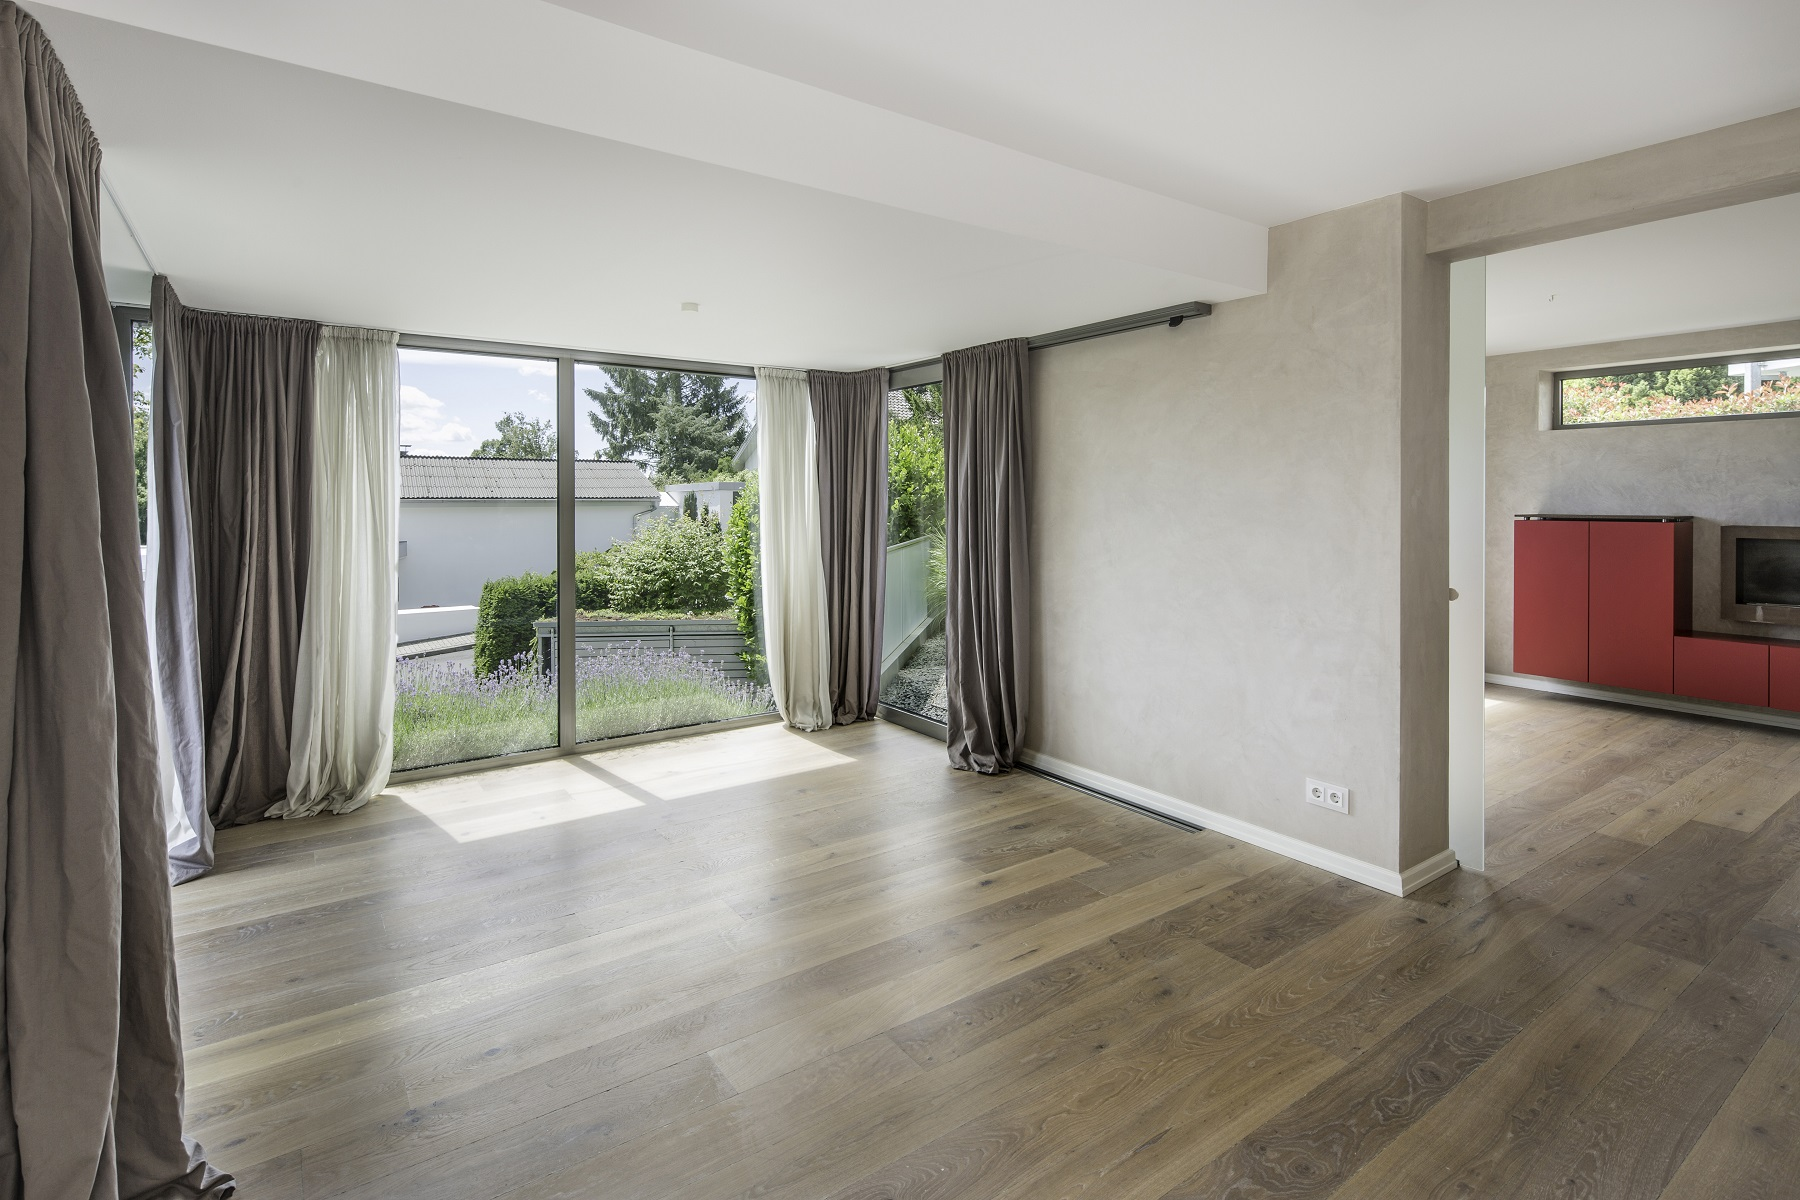 Apartamento por un Venta en High End Apartment with Magnificent Garden Wiesbaden, Hessen, 65193 Alemania